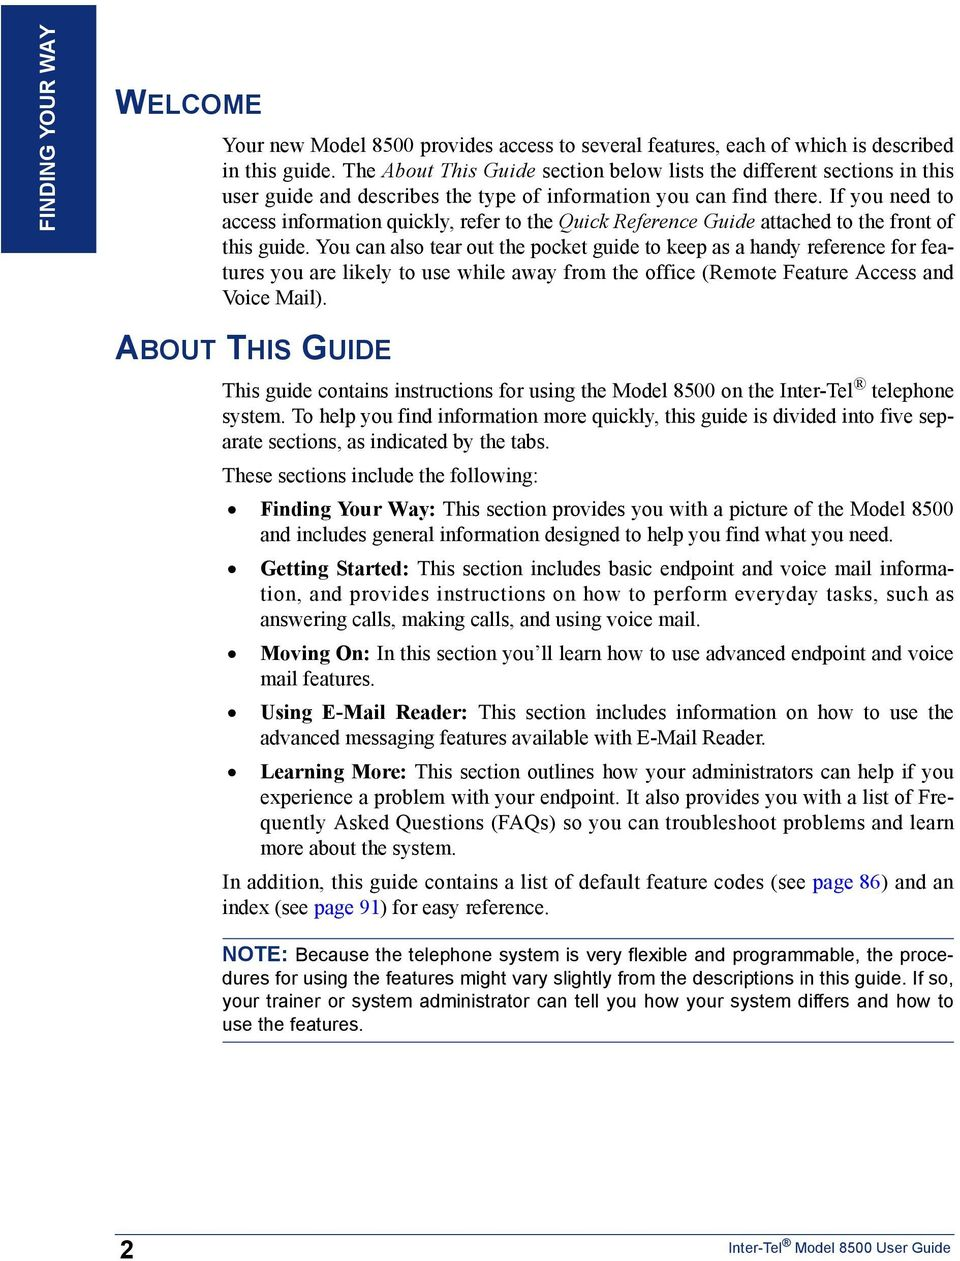 If you need to access information quickly, refer to the Quick Reference Guide attached to the front of this guide.